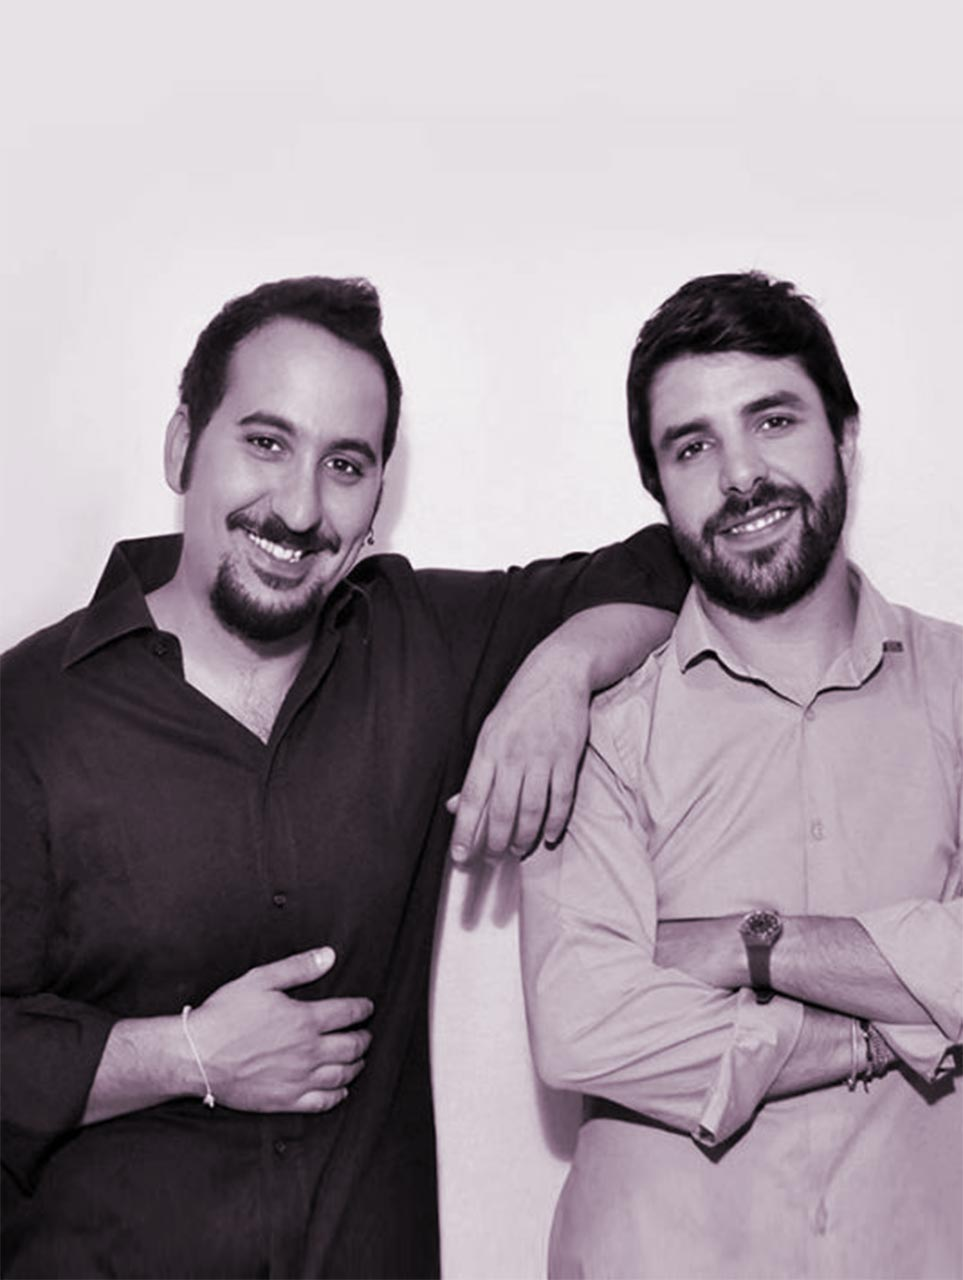 Santa Design Studio was established in 2011, by Matteo Memmi and Marco Forbicioni